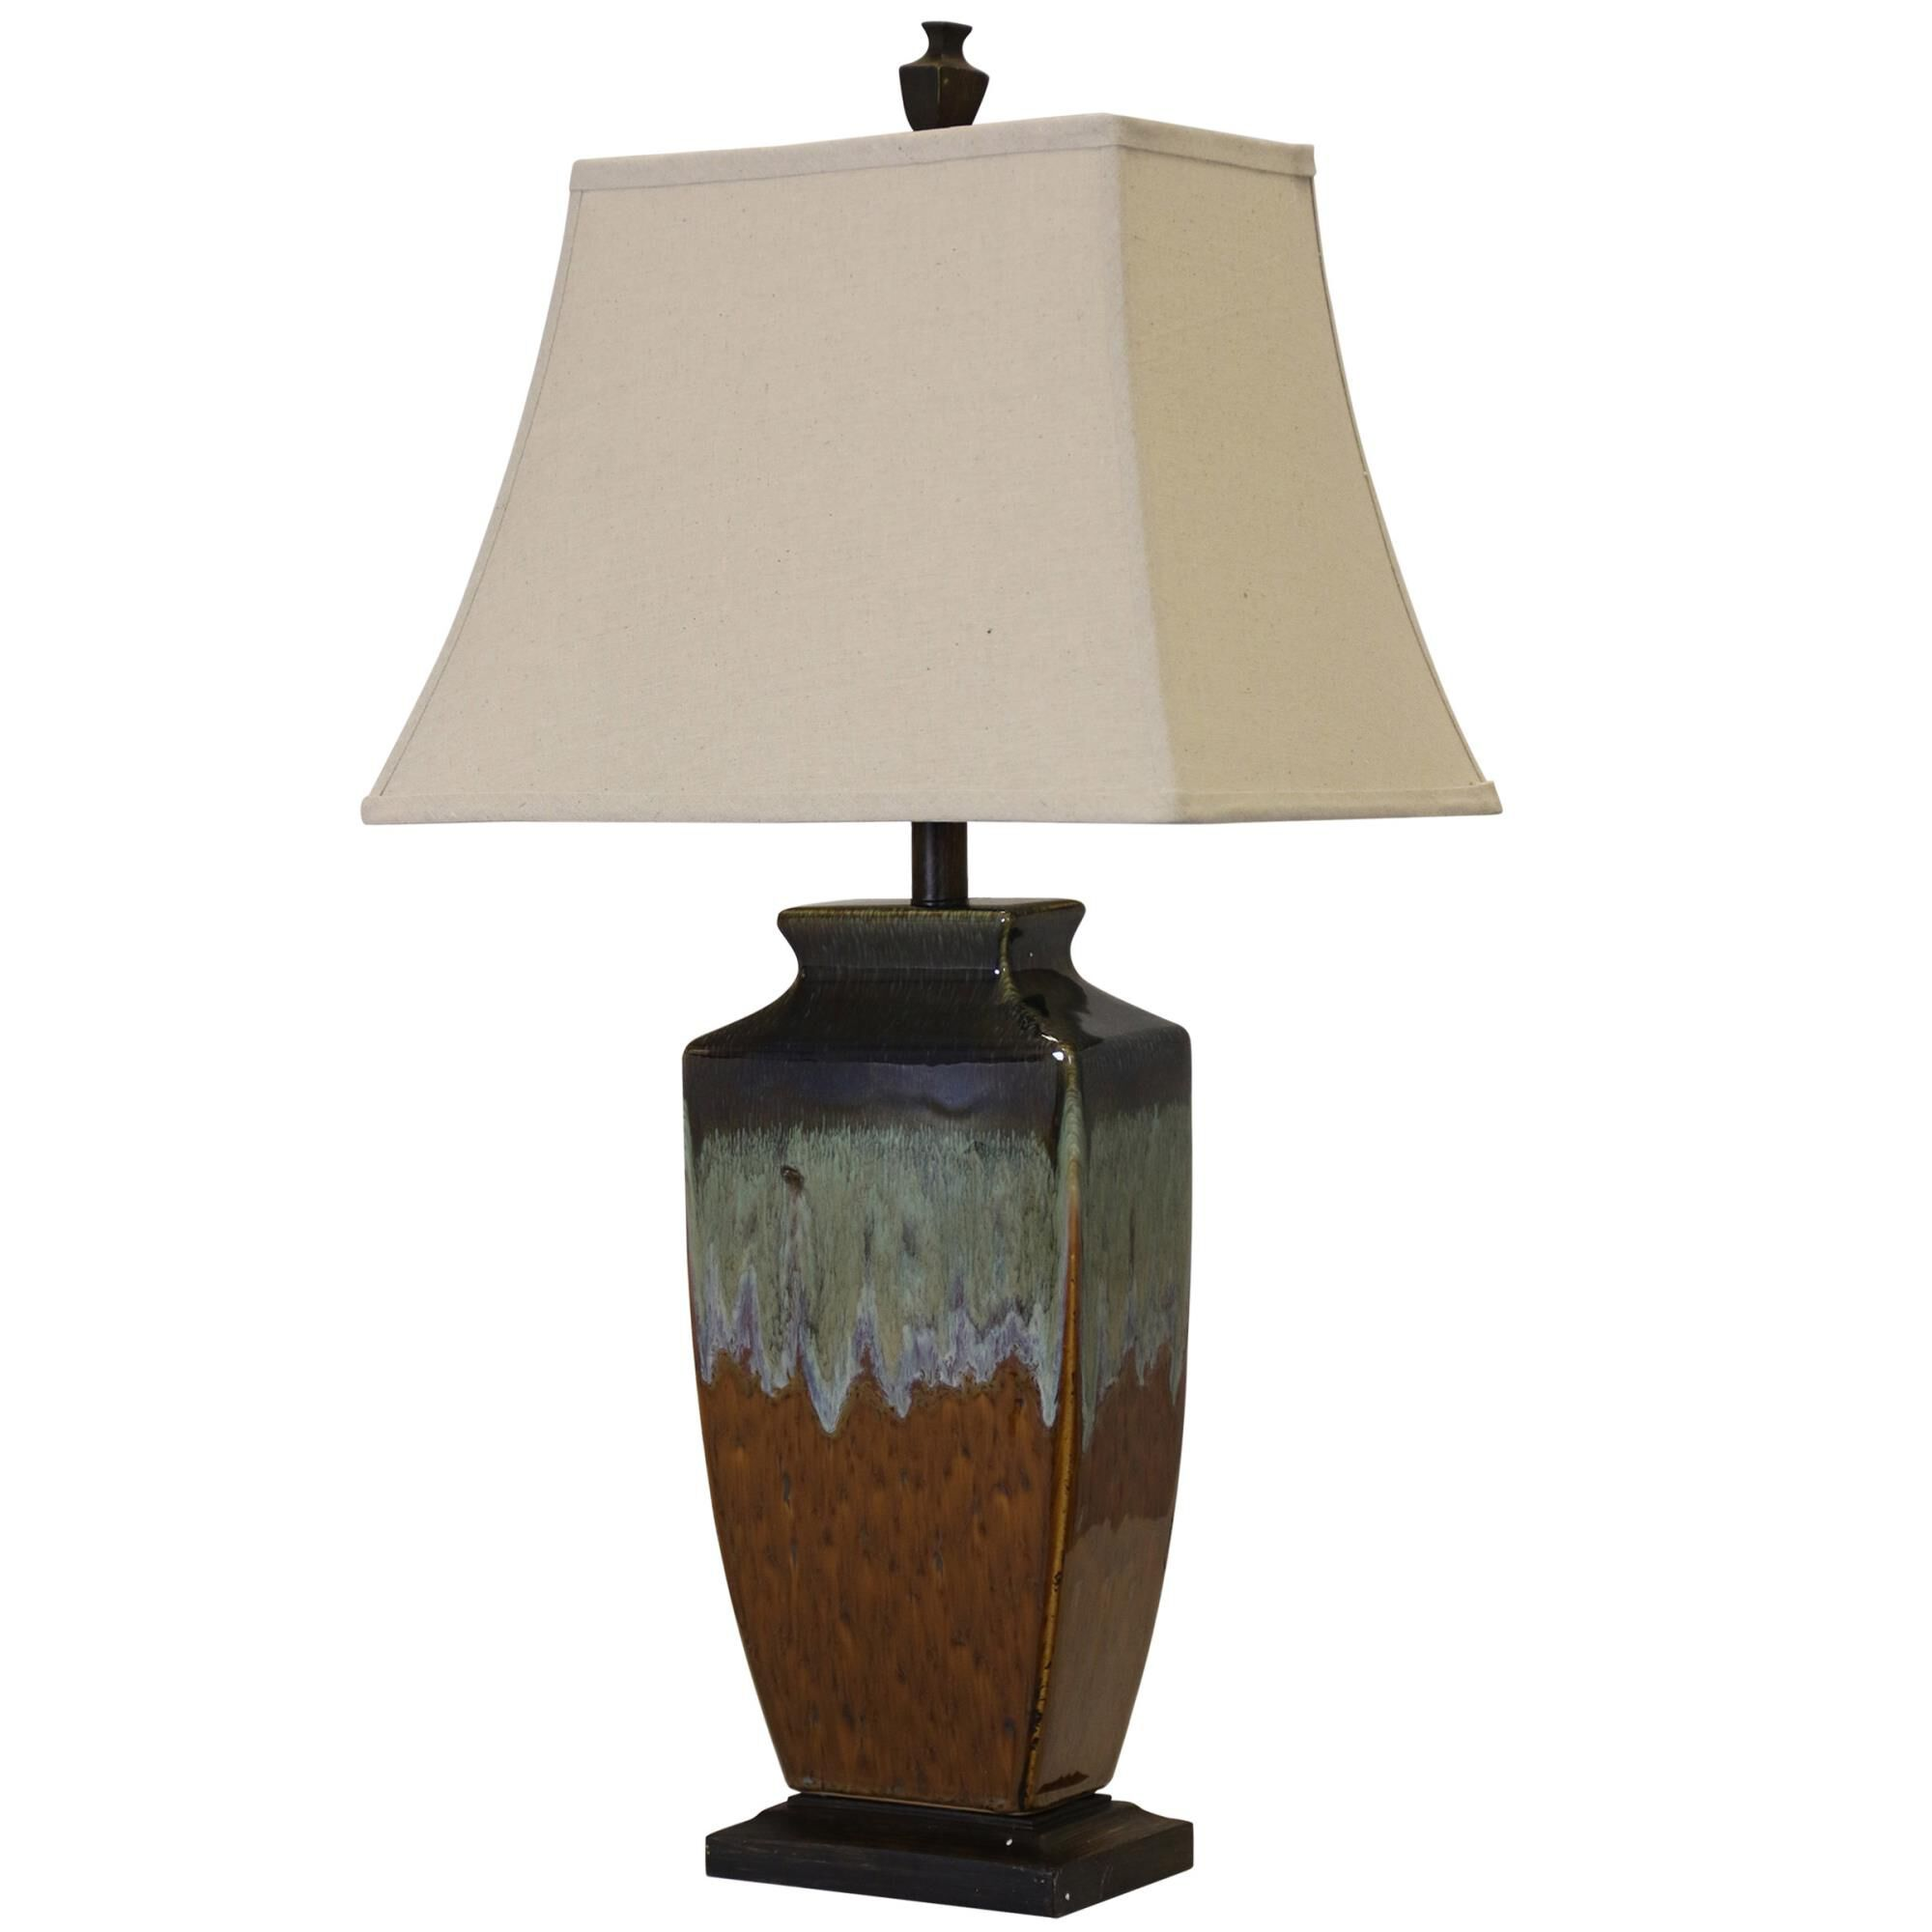 32 Inch Table Lamp Capitol Lighting In 2021 Ceramic Table Lamps Lamp Turquoise Table Lamp